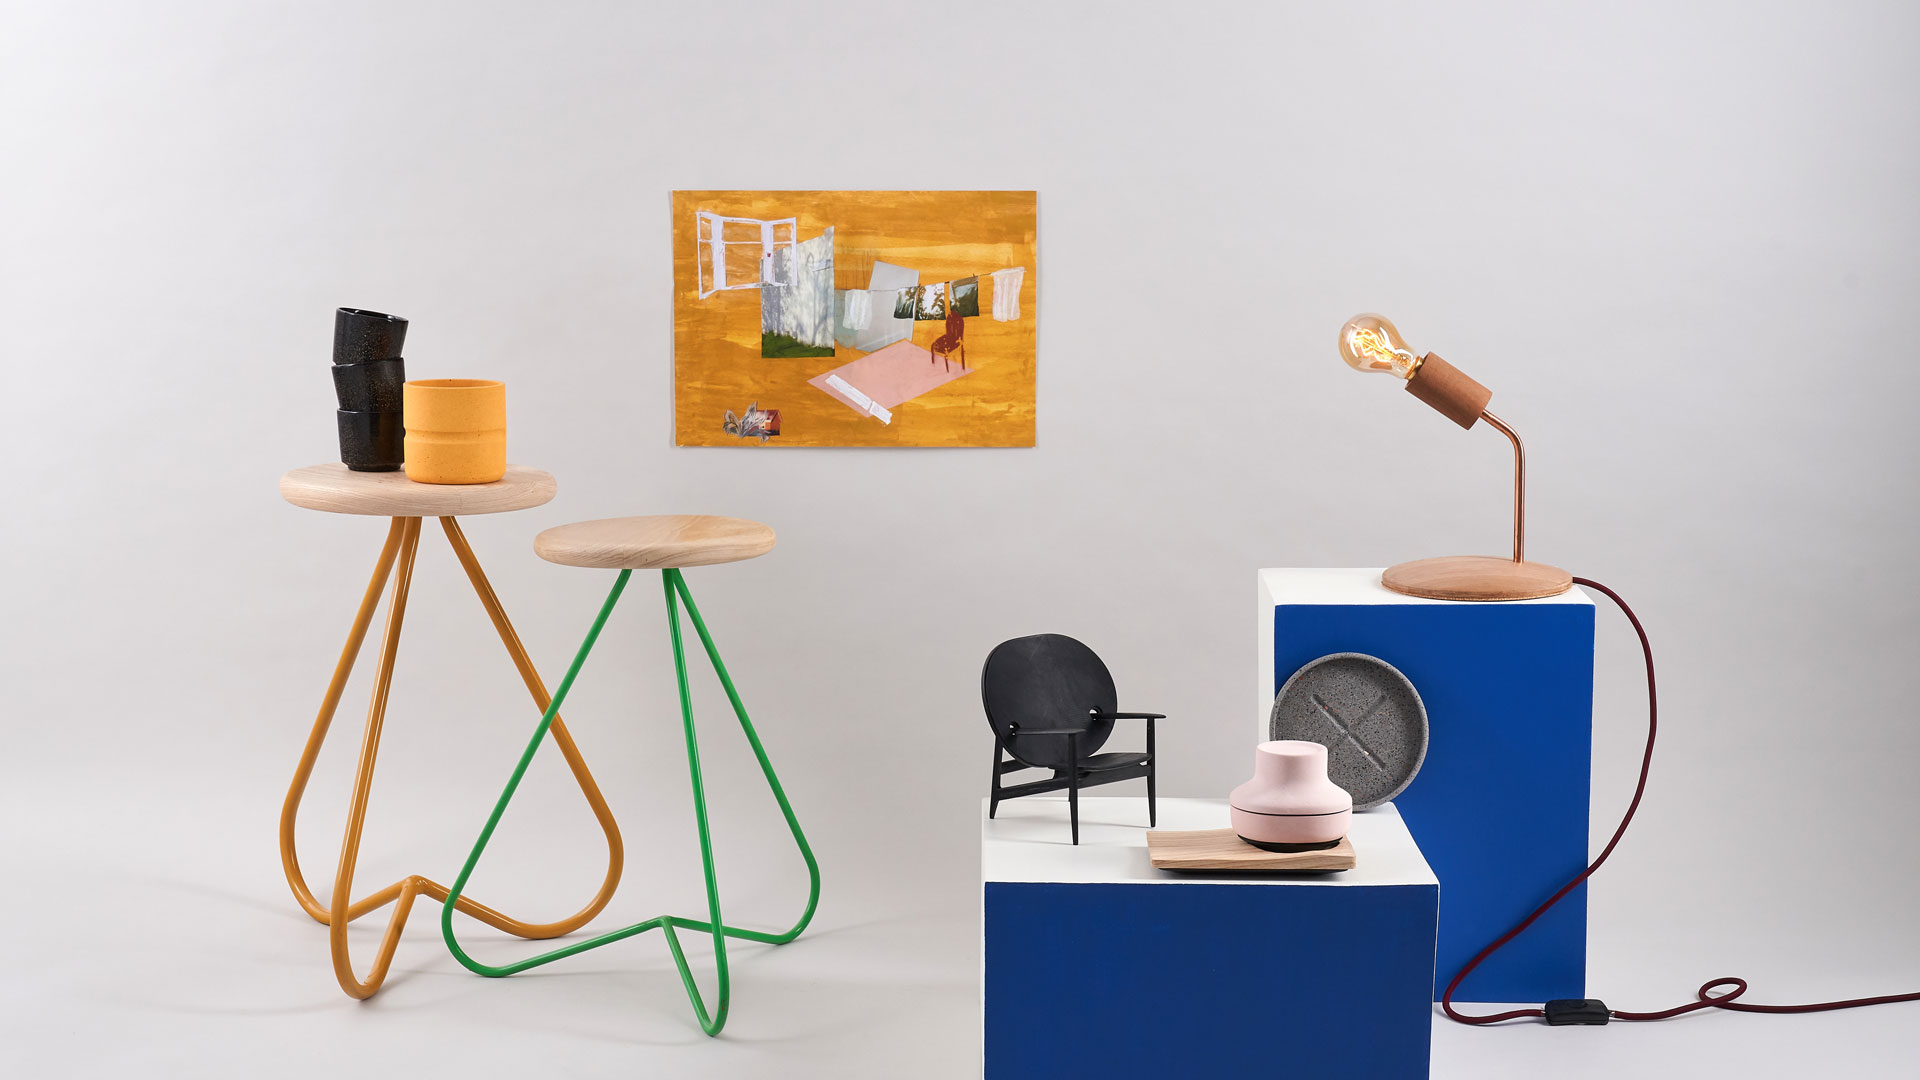 New Designers returns with projects that tackle social issues